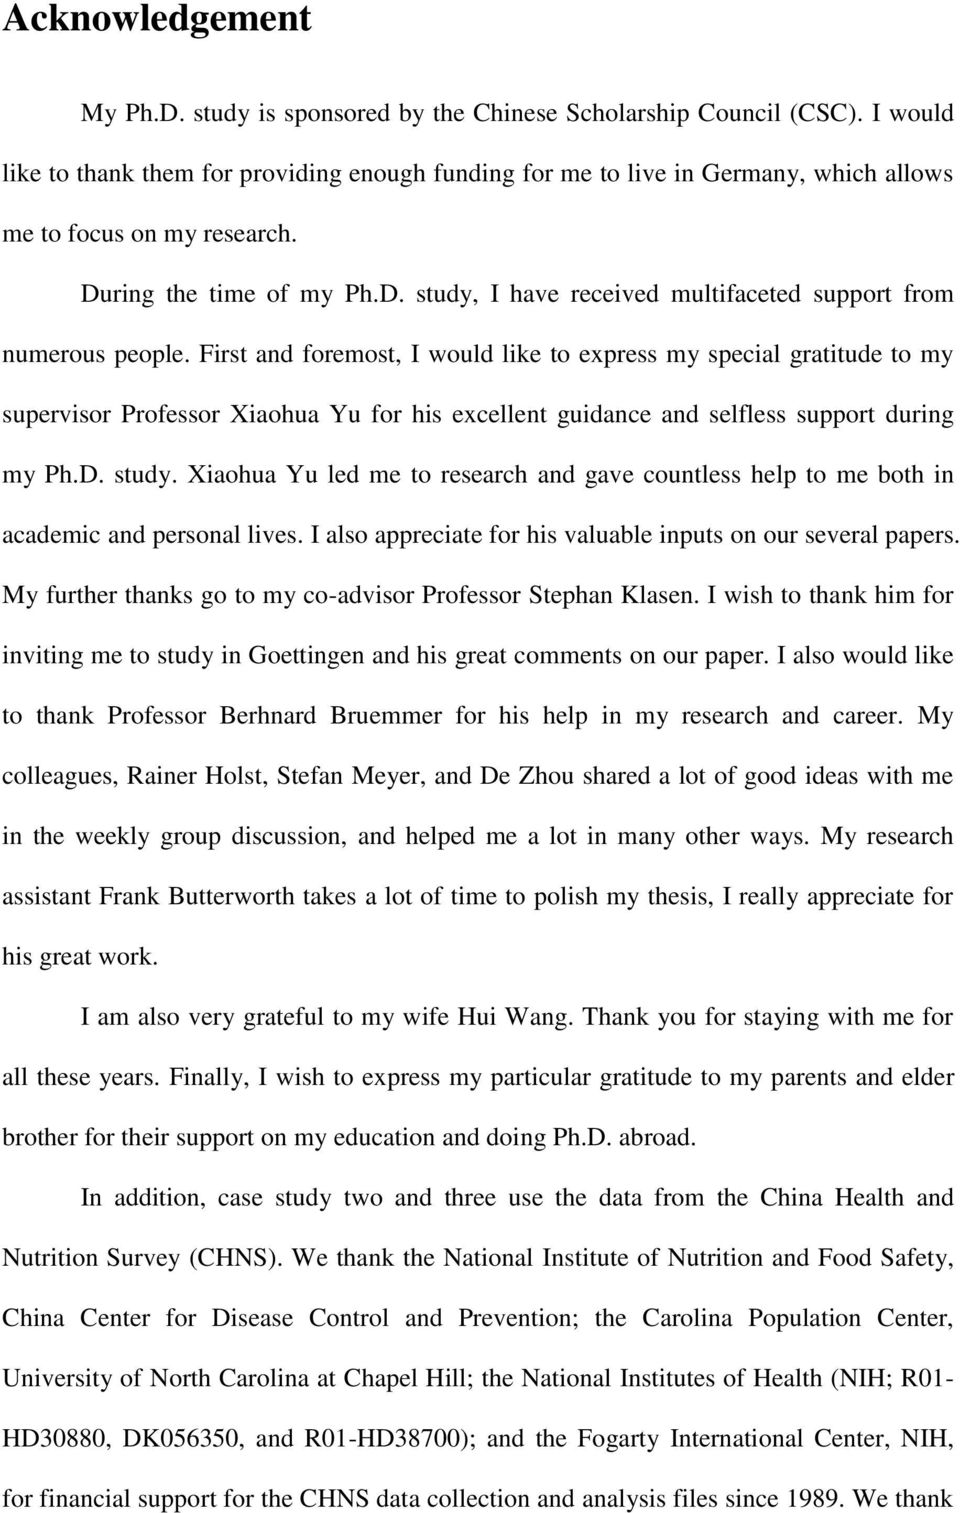 First and foremost, I would like to express my special gratitude to my supervisor Professor Xiaohua Yu for his excellent guidance and selfless support during my Ph.D. study.